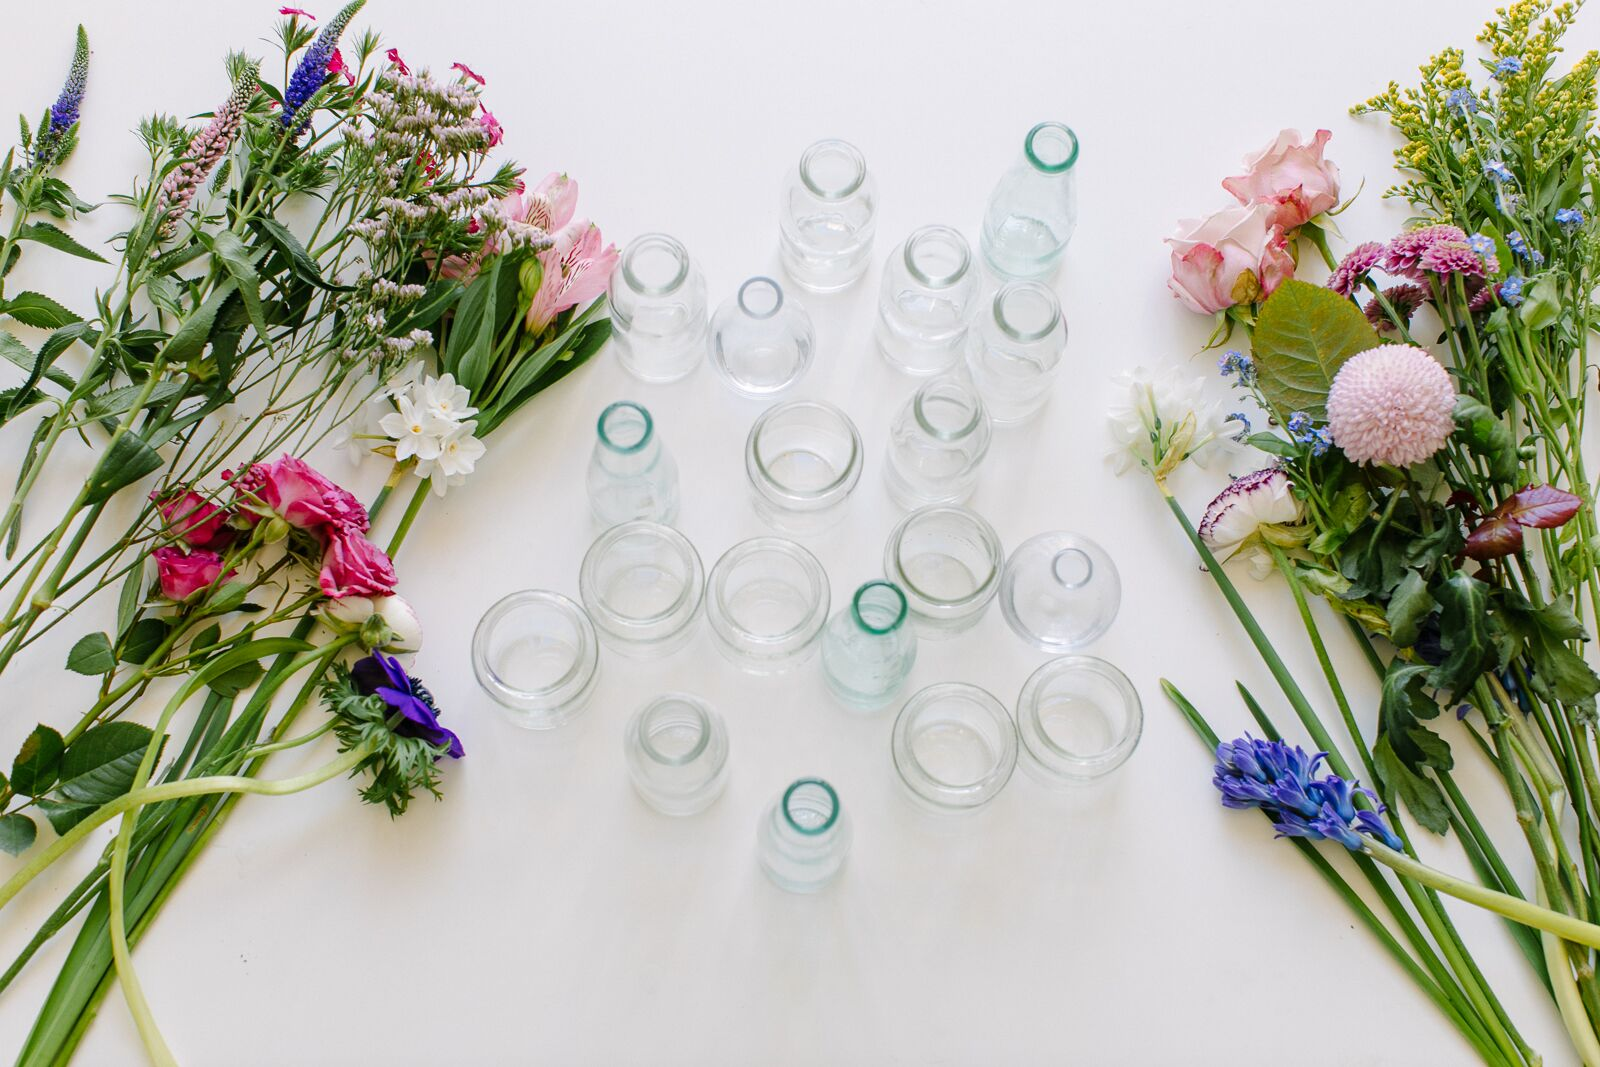 Spring flowers (narcissi, forget-me-nots, hyacinths, roses, ranunculus) laid out next to an assortment of clear glass bottles and vases of varying shapes and sizes